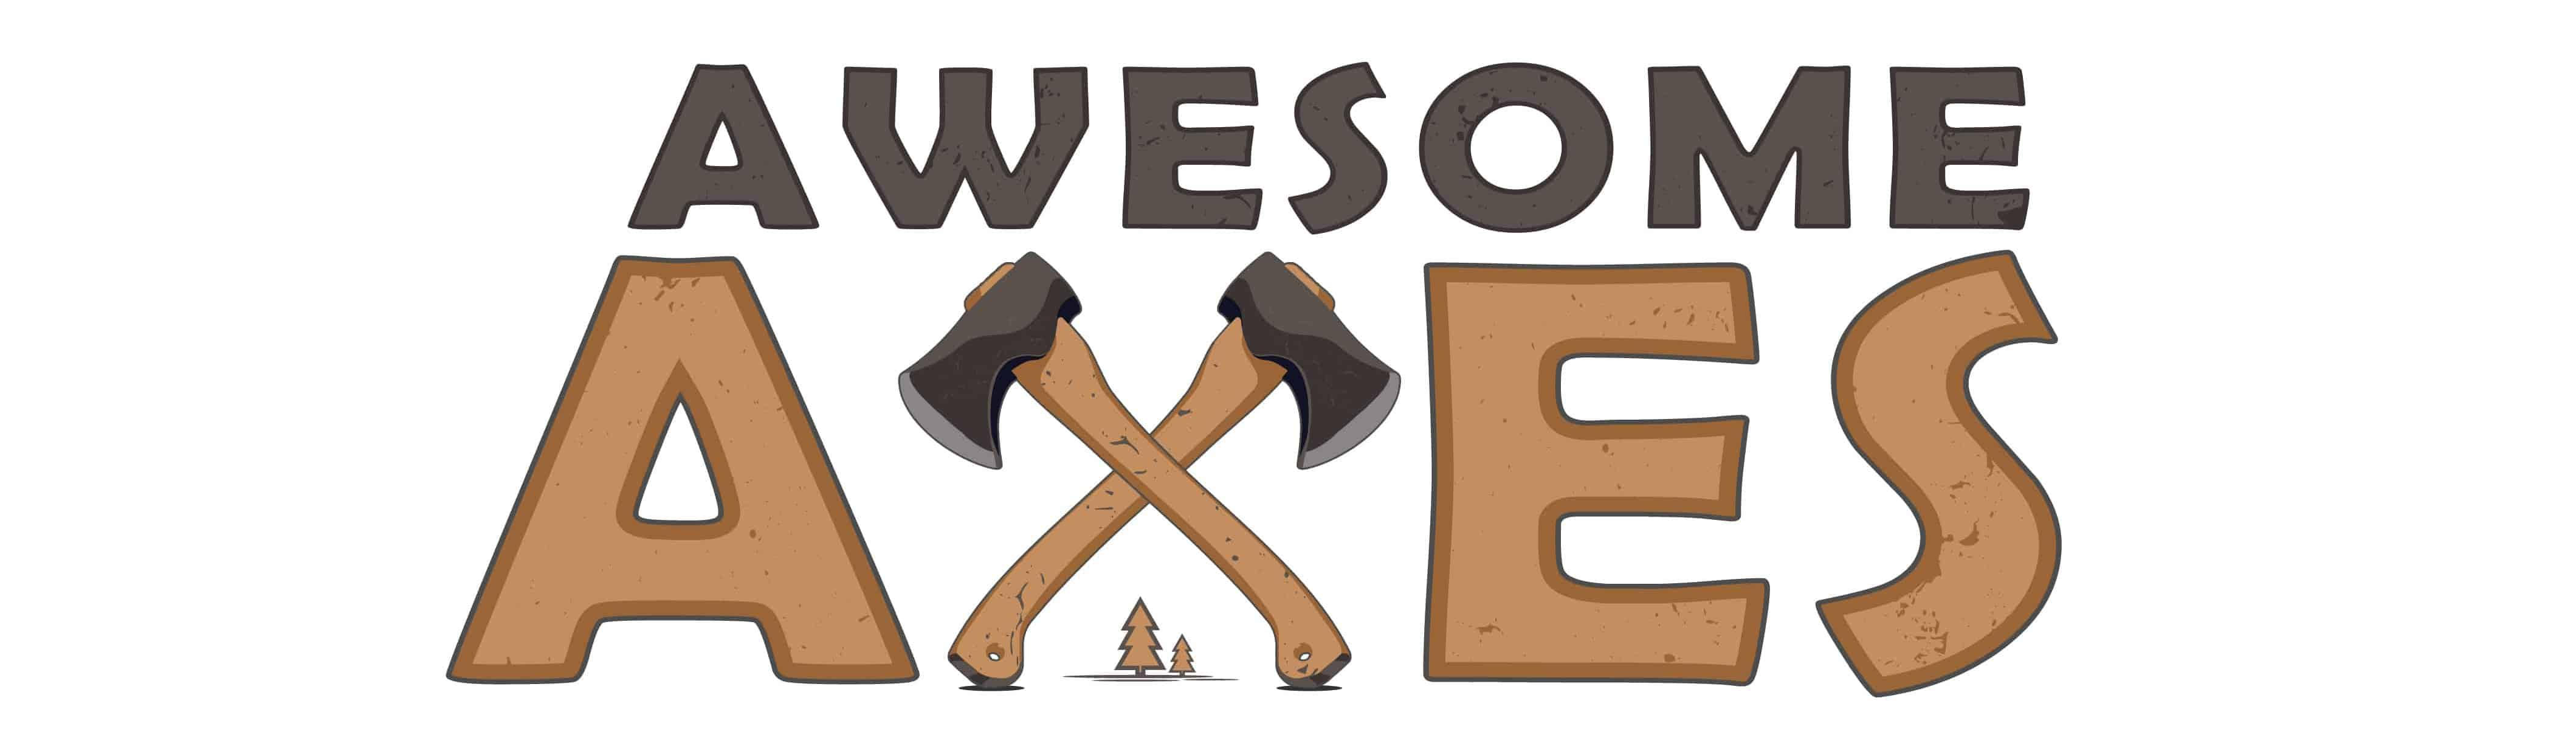 Awesome Axes – all about axes and more